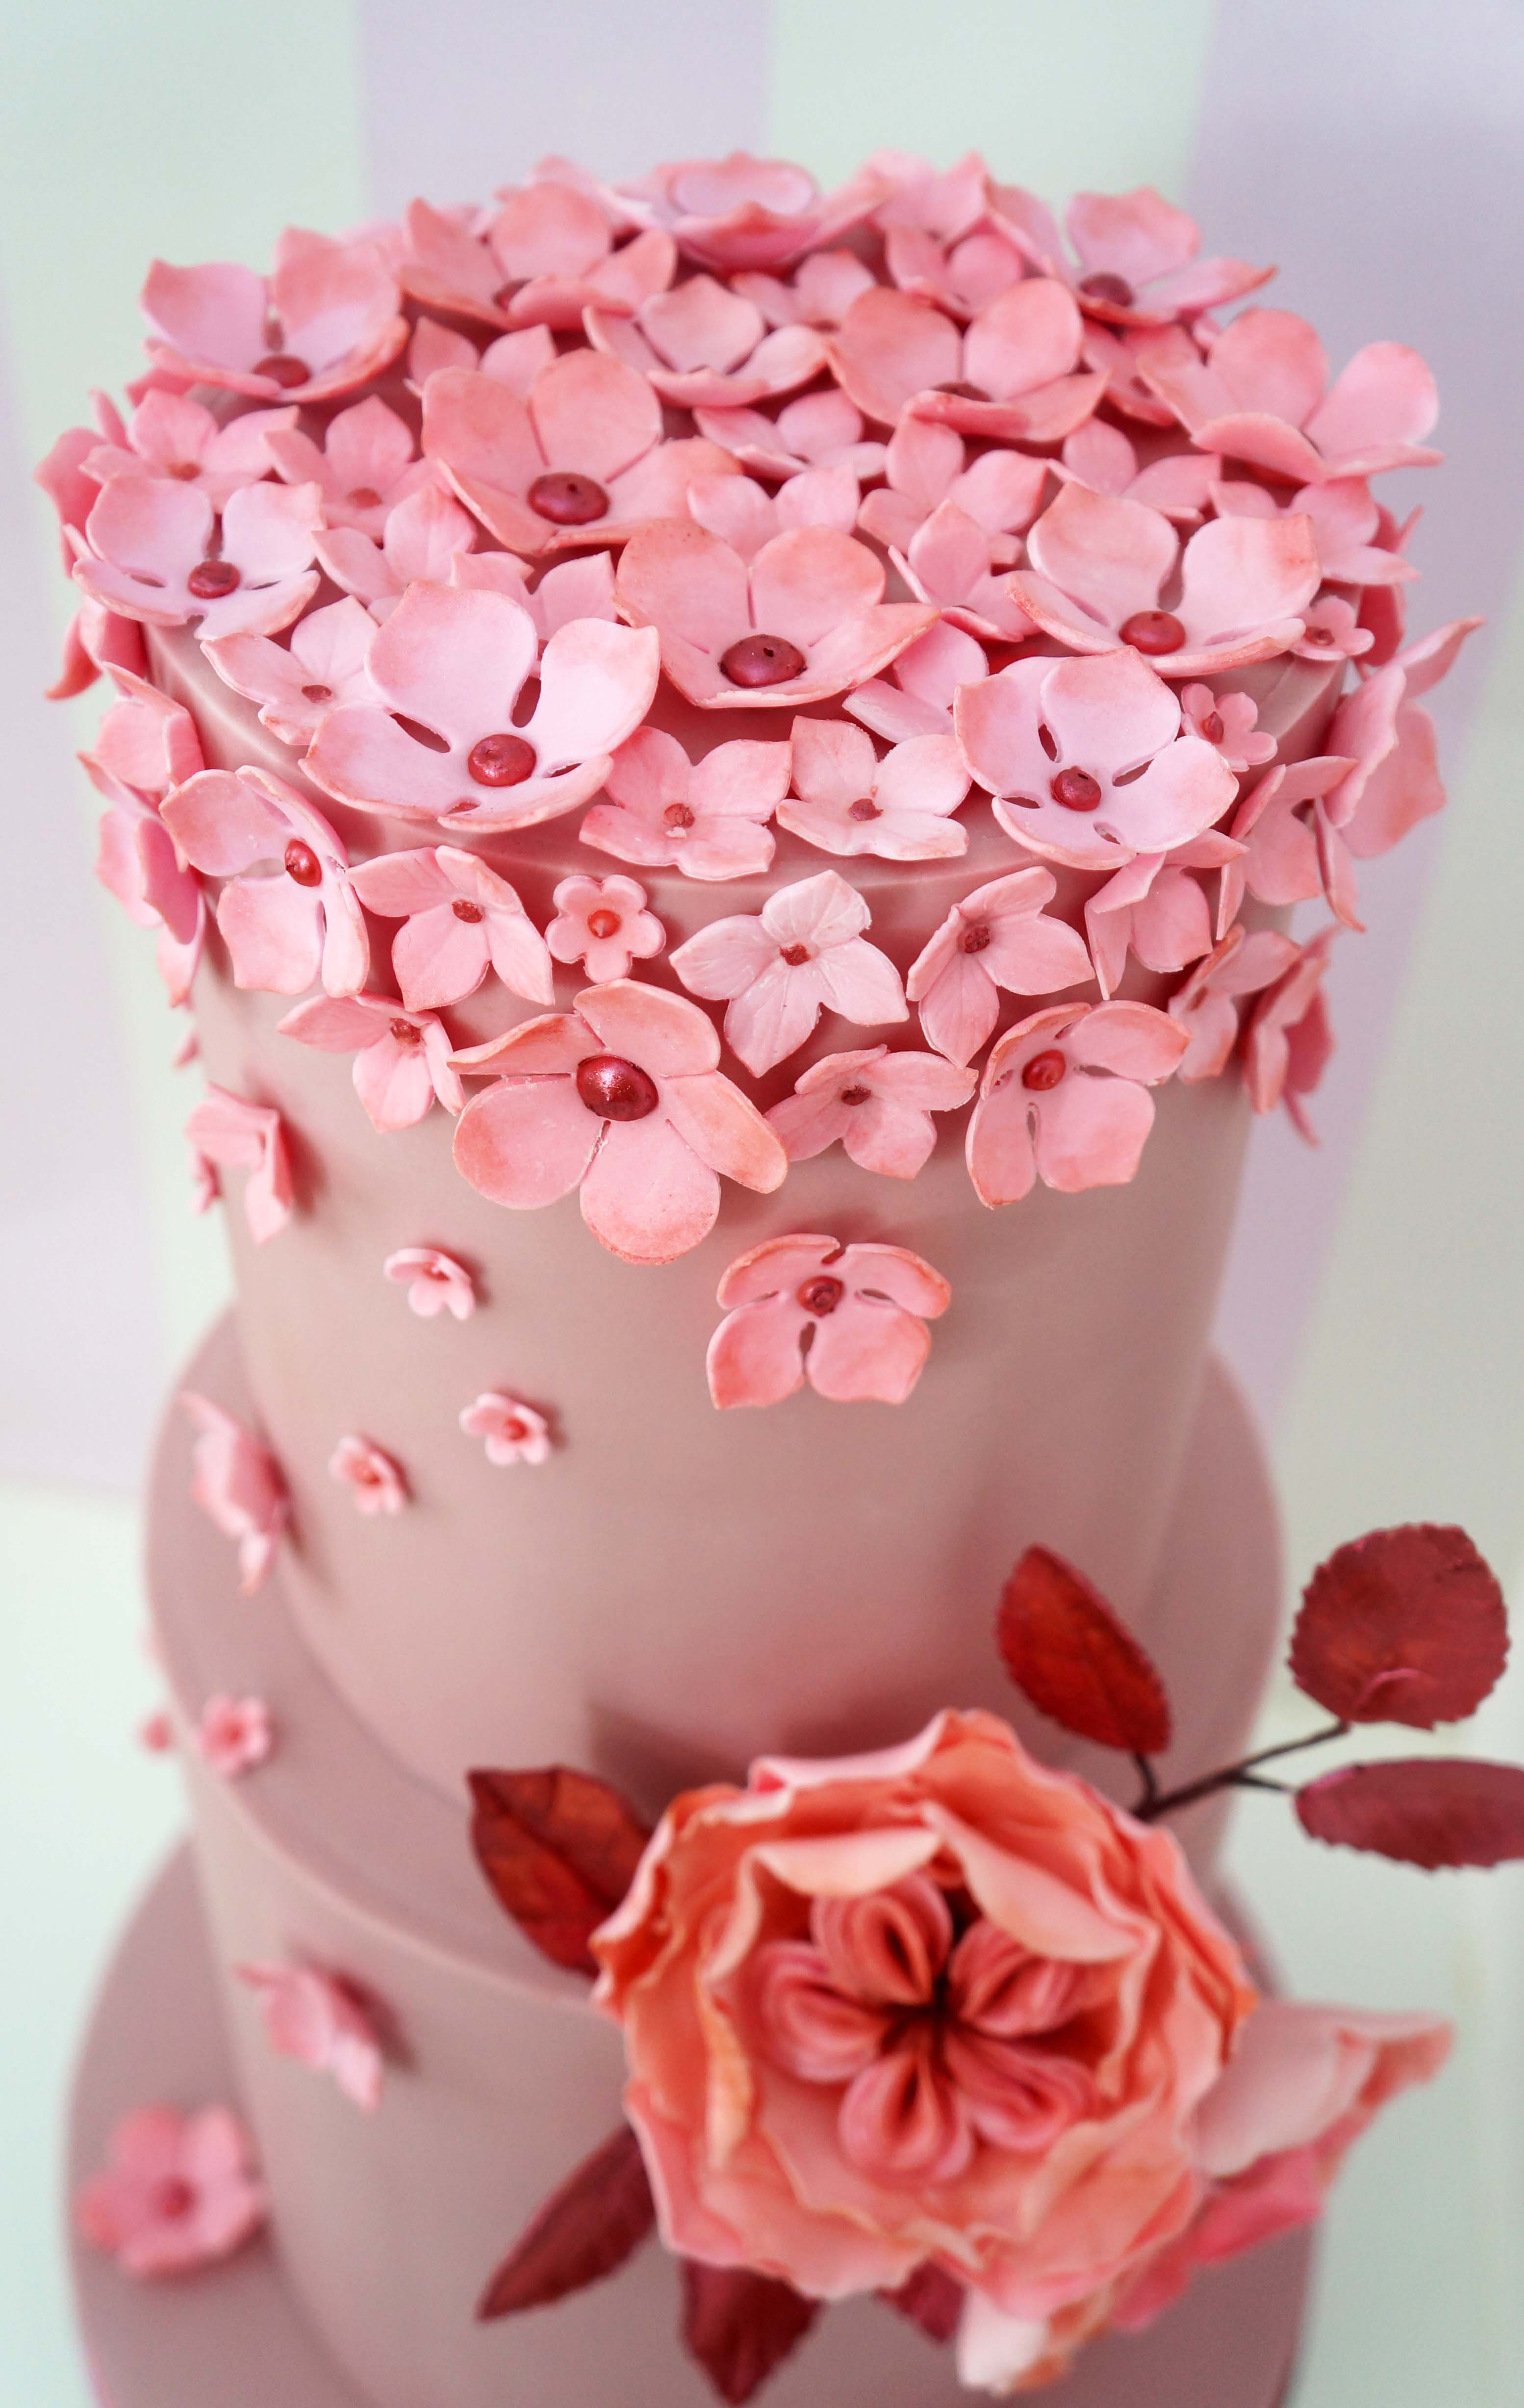 Pink Wedding cake with small pink flowers